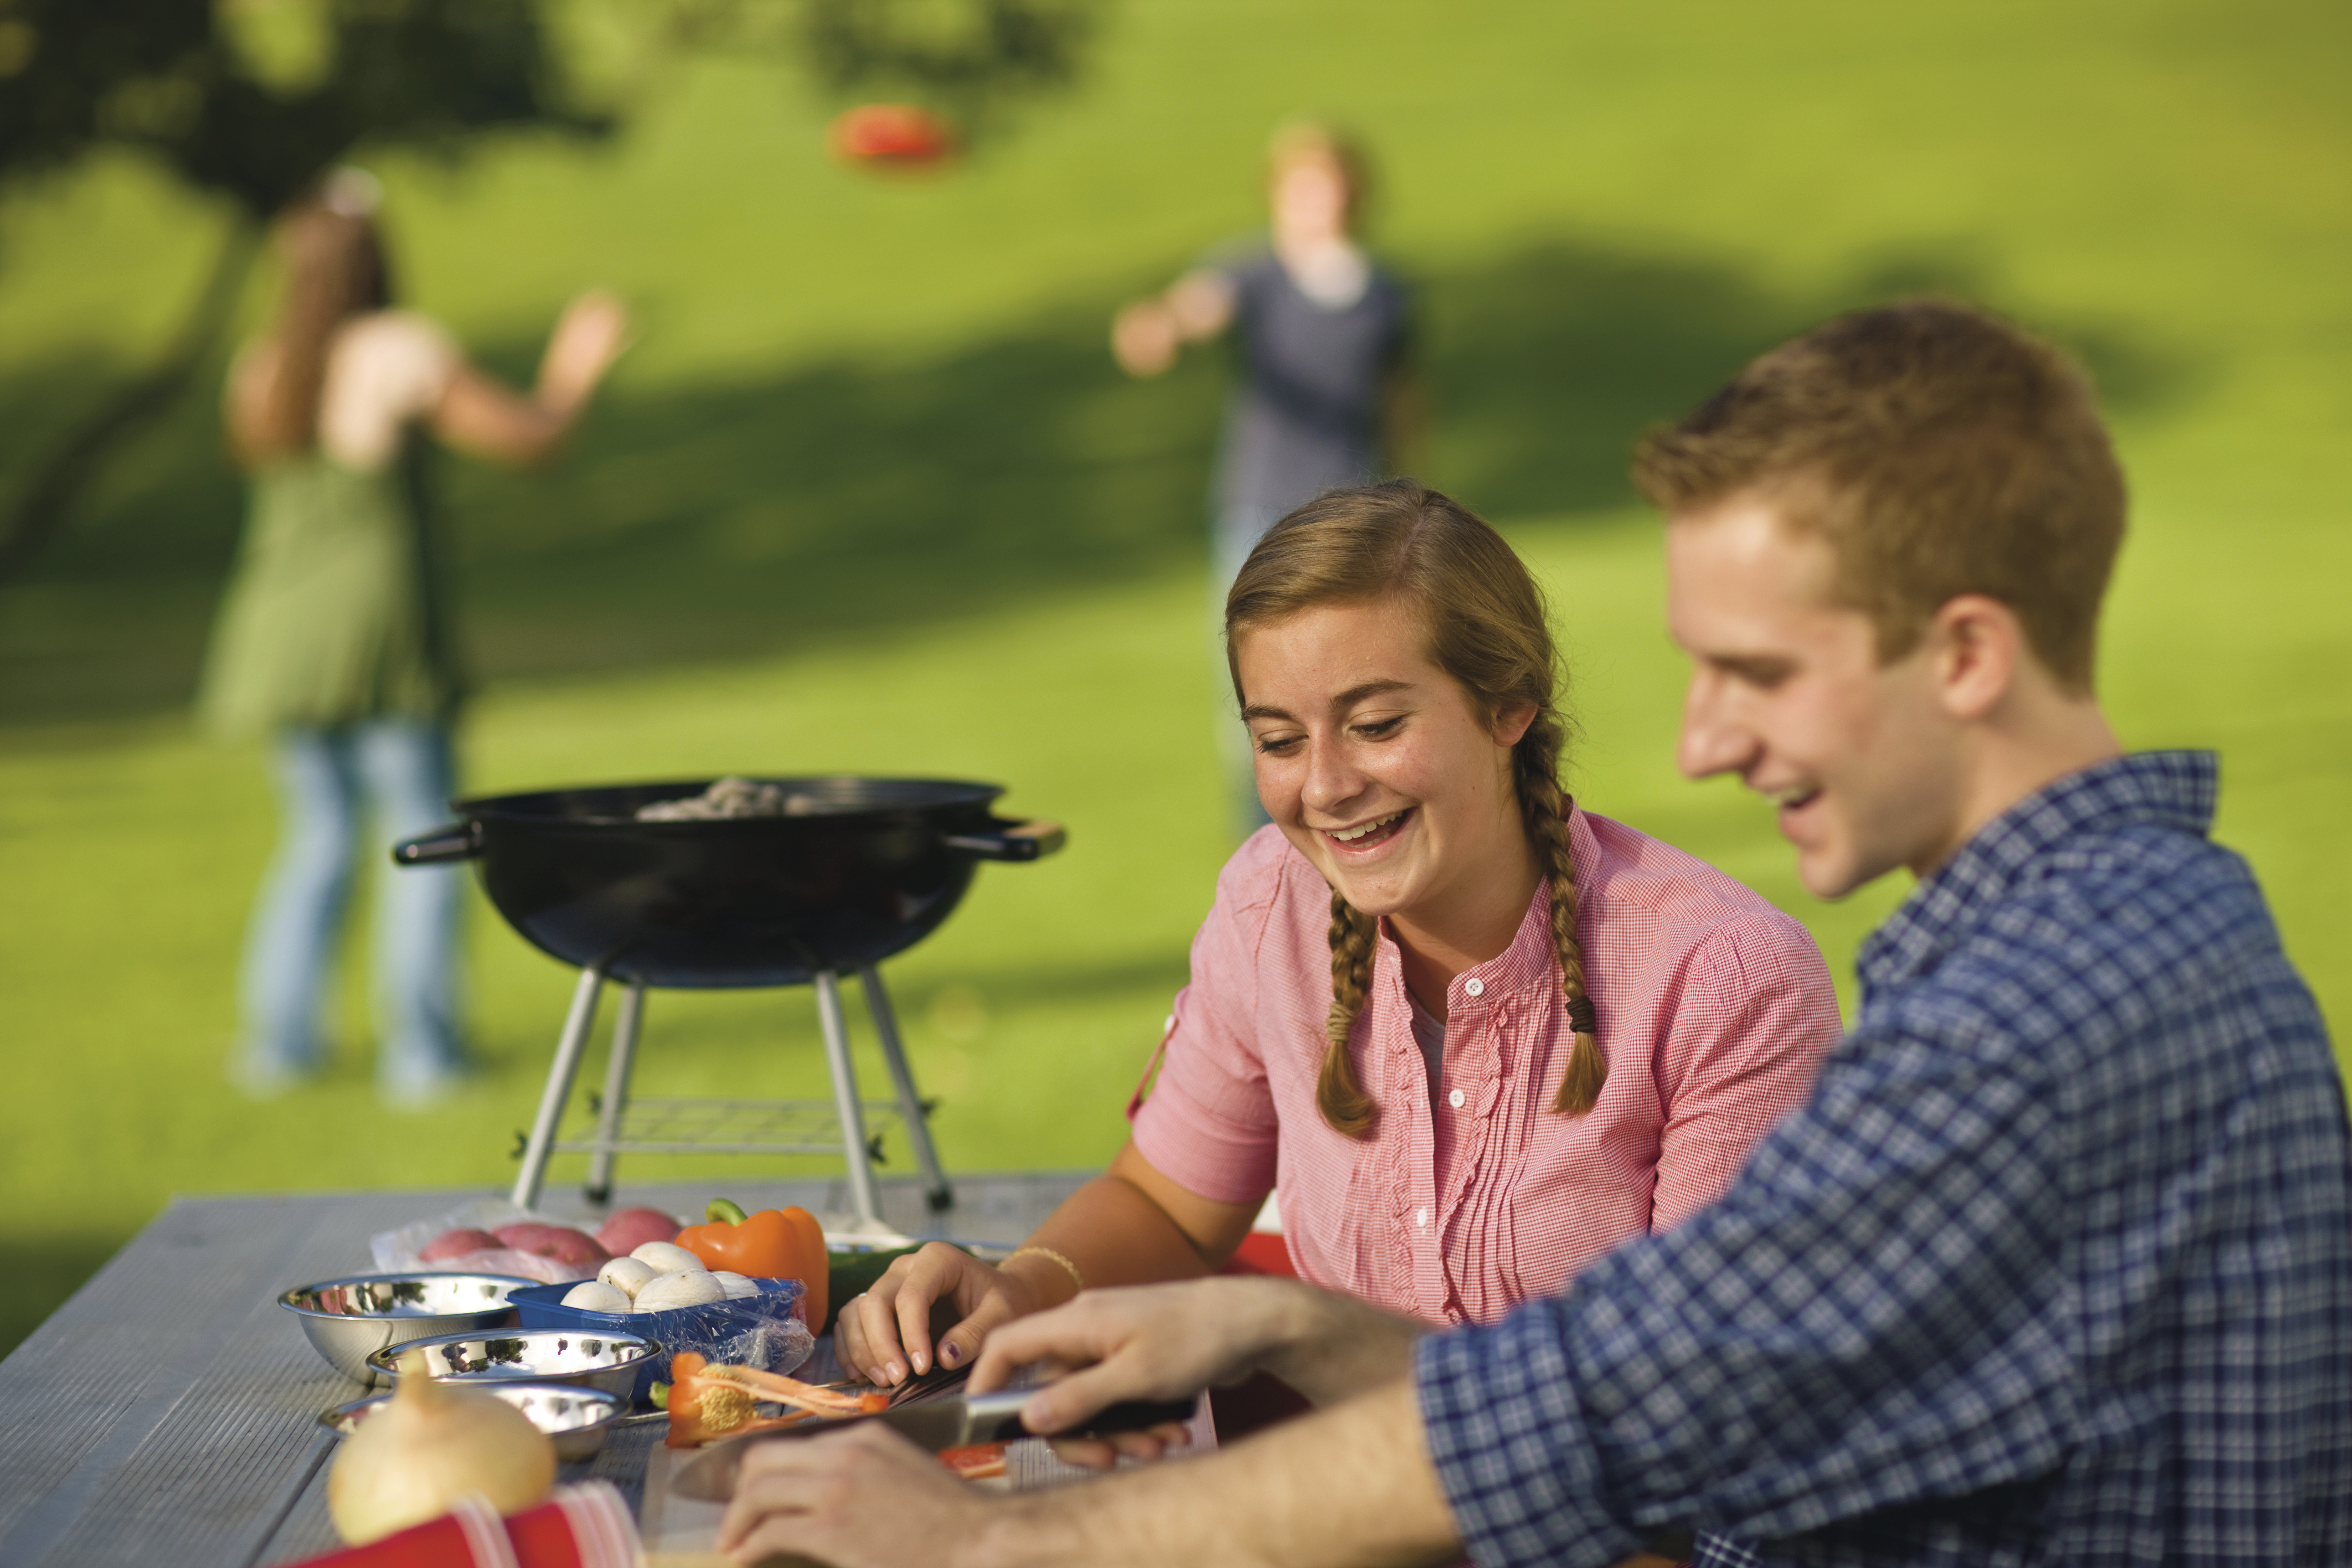 A young couple goes on a date at a barbecue.